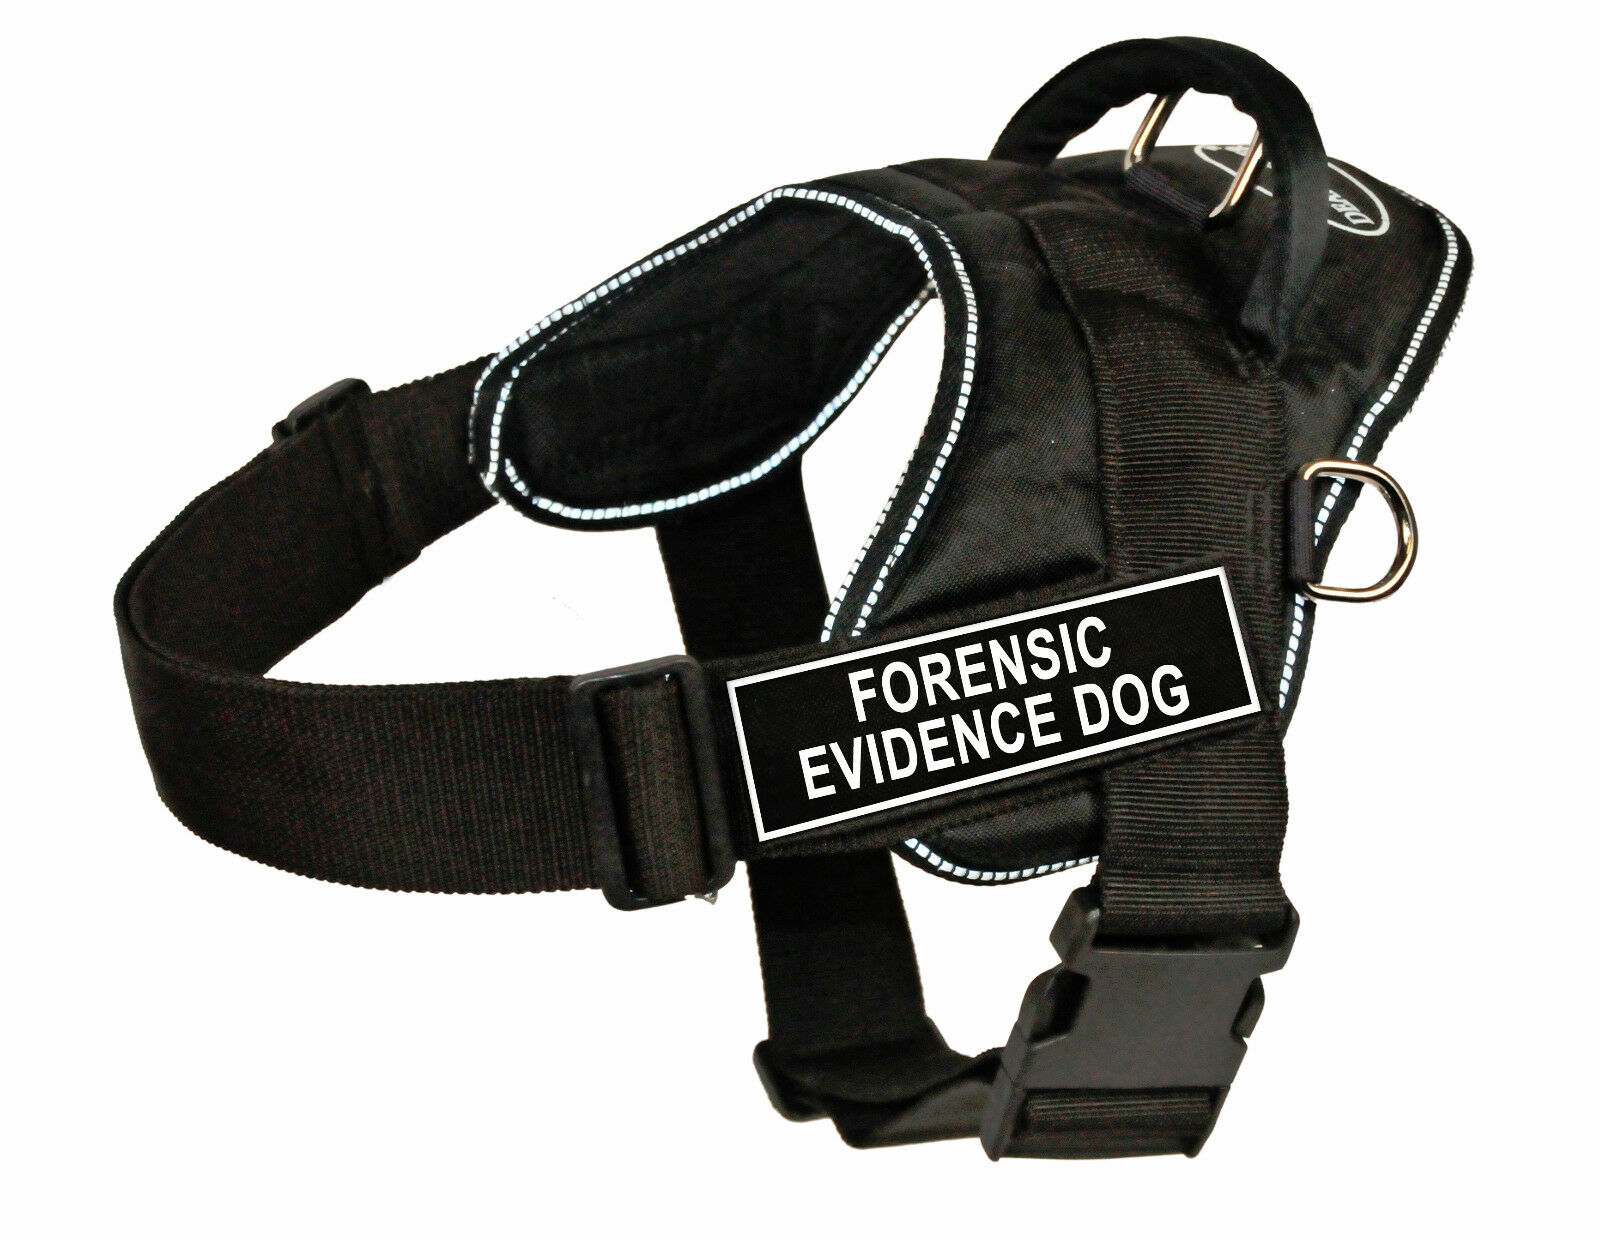 caldo Dean & Tyler   DT Fun     Reflective Trim   Harness Includes One Pair of Patches  forma unica